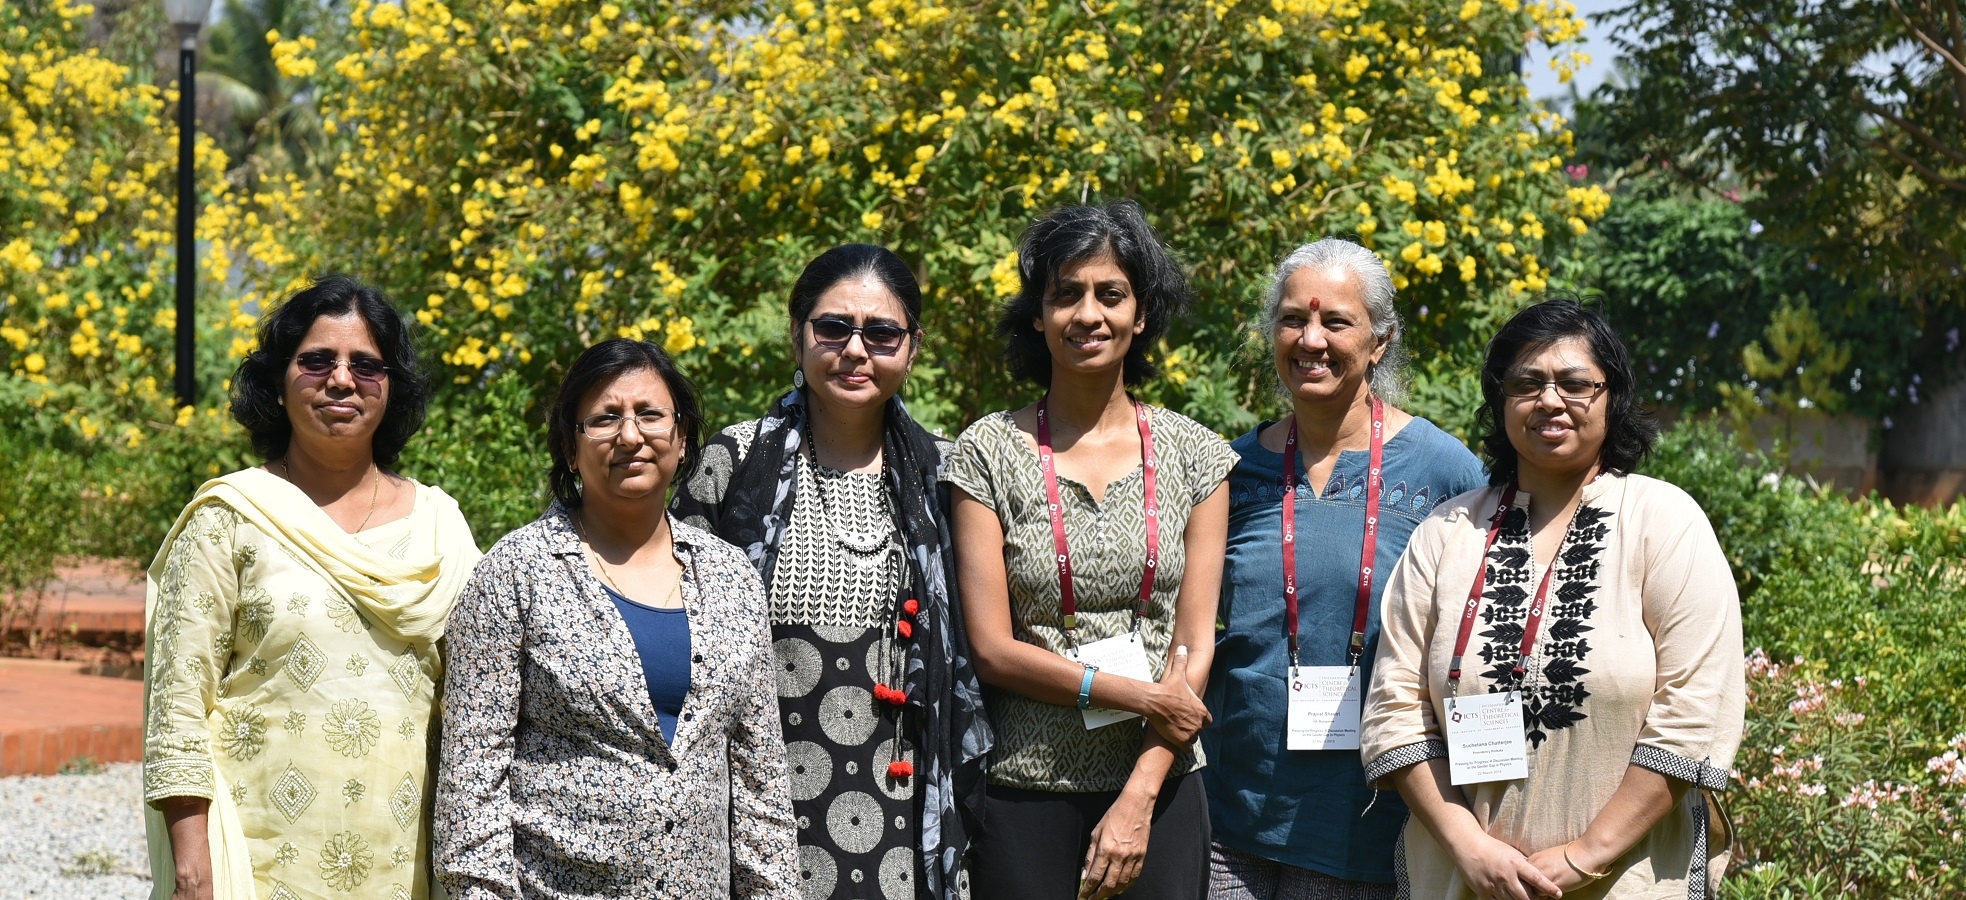 Gender in Physics working group of the Indian Physics Association. Credit: ICTS-TIFR